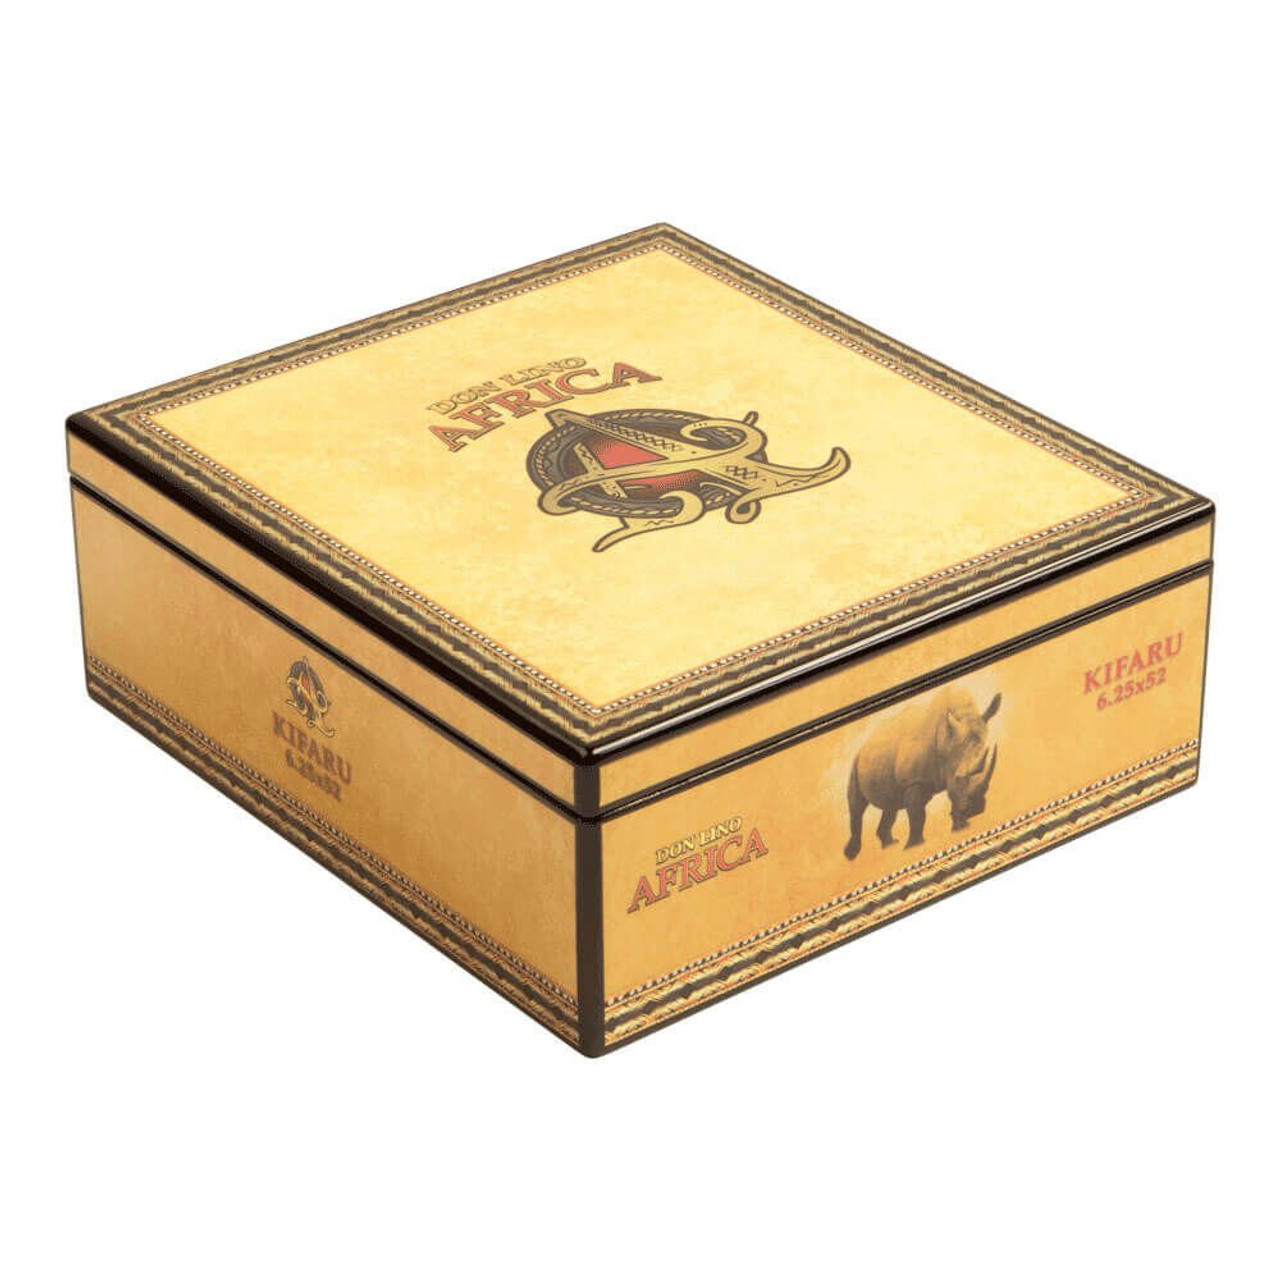 Don Lino Africa Toro Punda Milia Cigars - 5.5 x 54 (Box of 20)